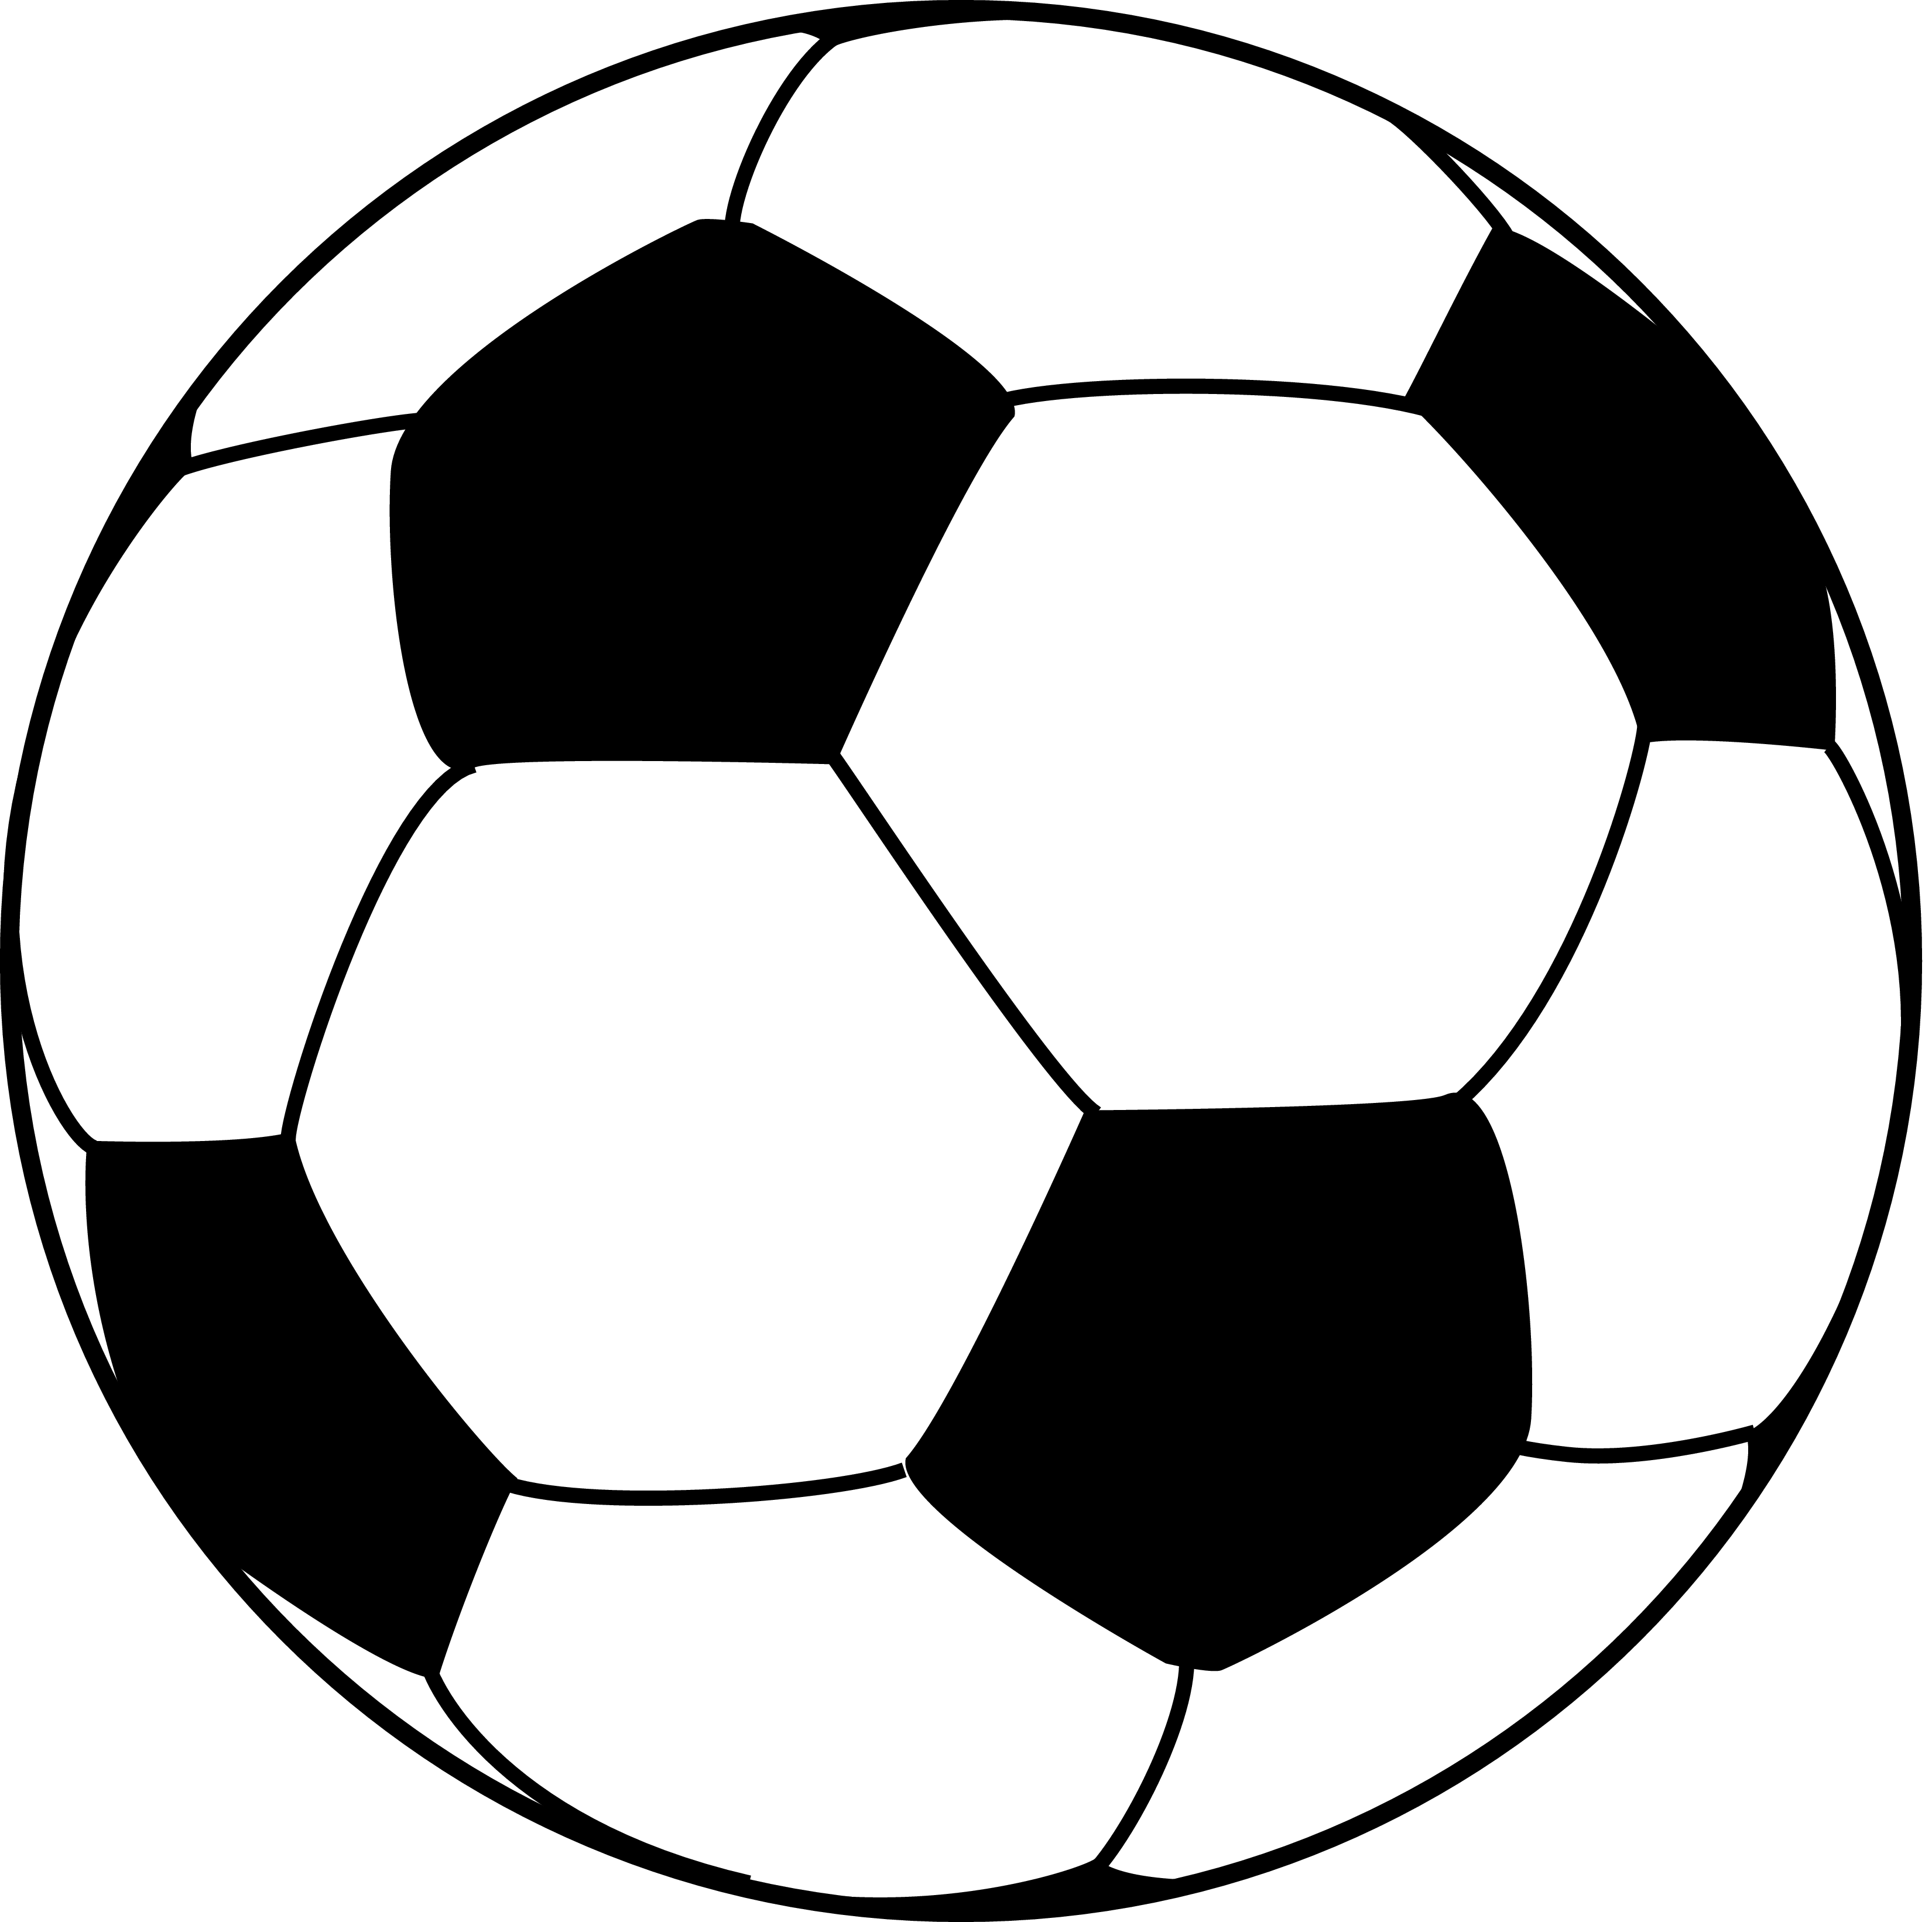 Ball clipart soccor. Soccer kid transparent png